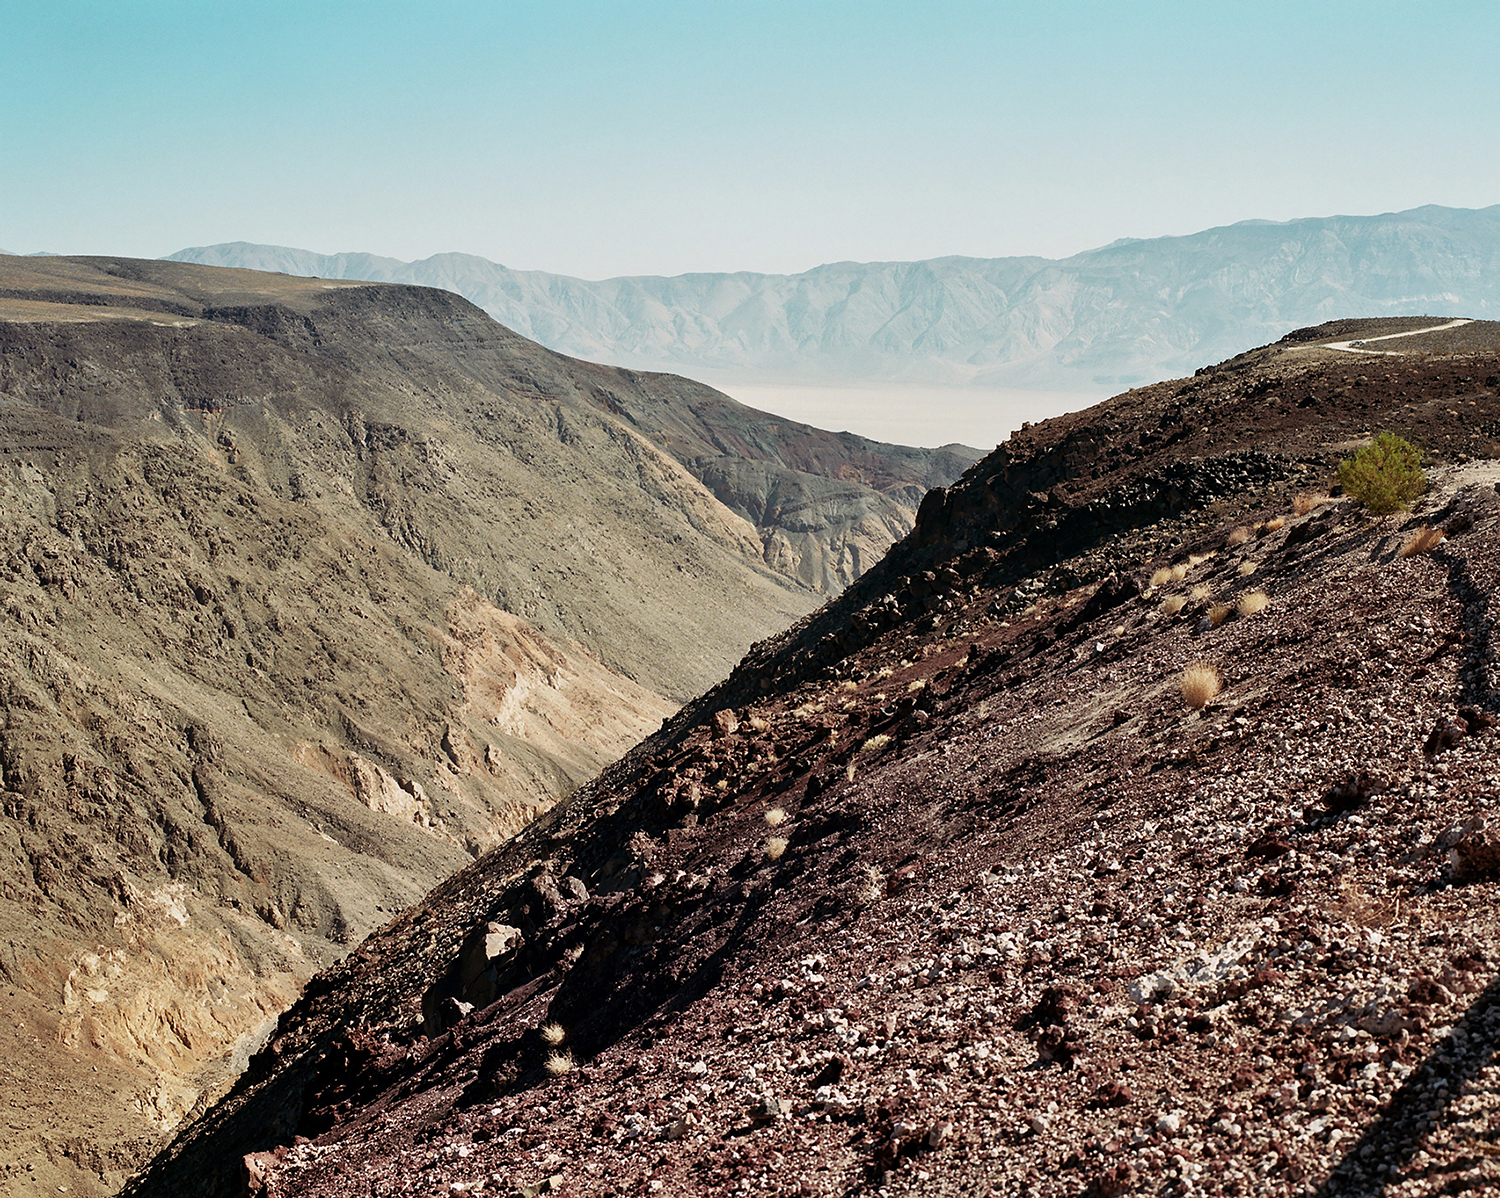 A look at those who call Death Valley, one of the hottest, most remote and inhospitable places on earth, home.